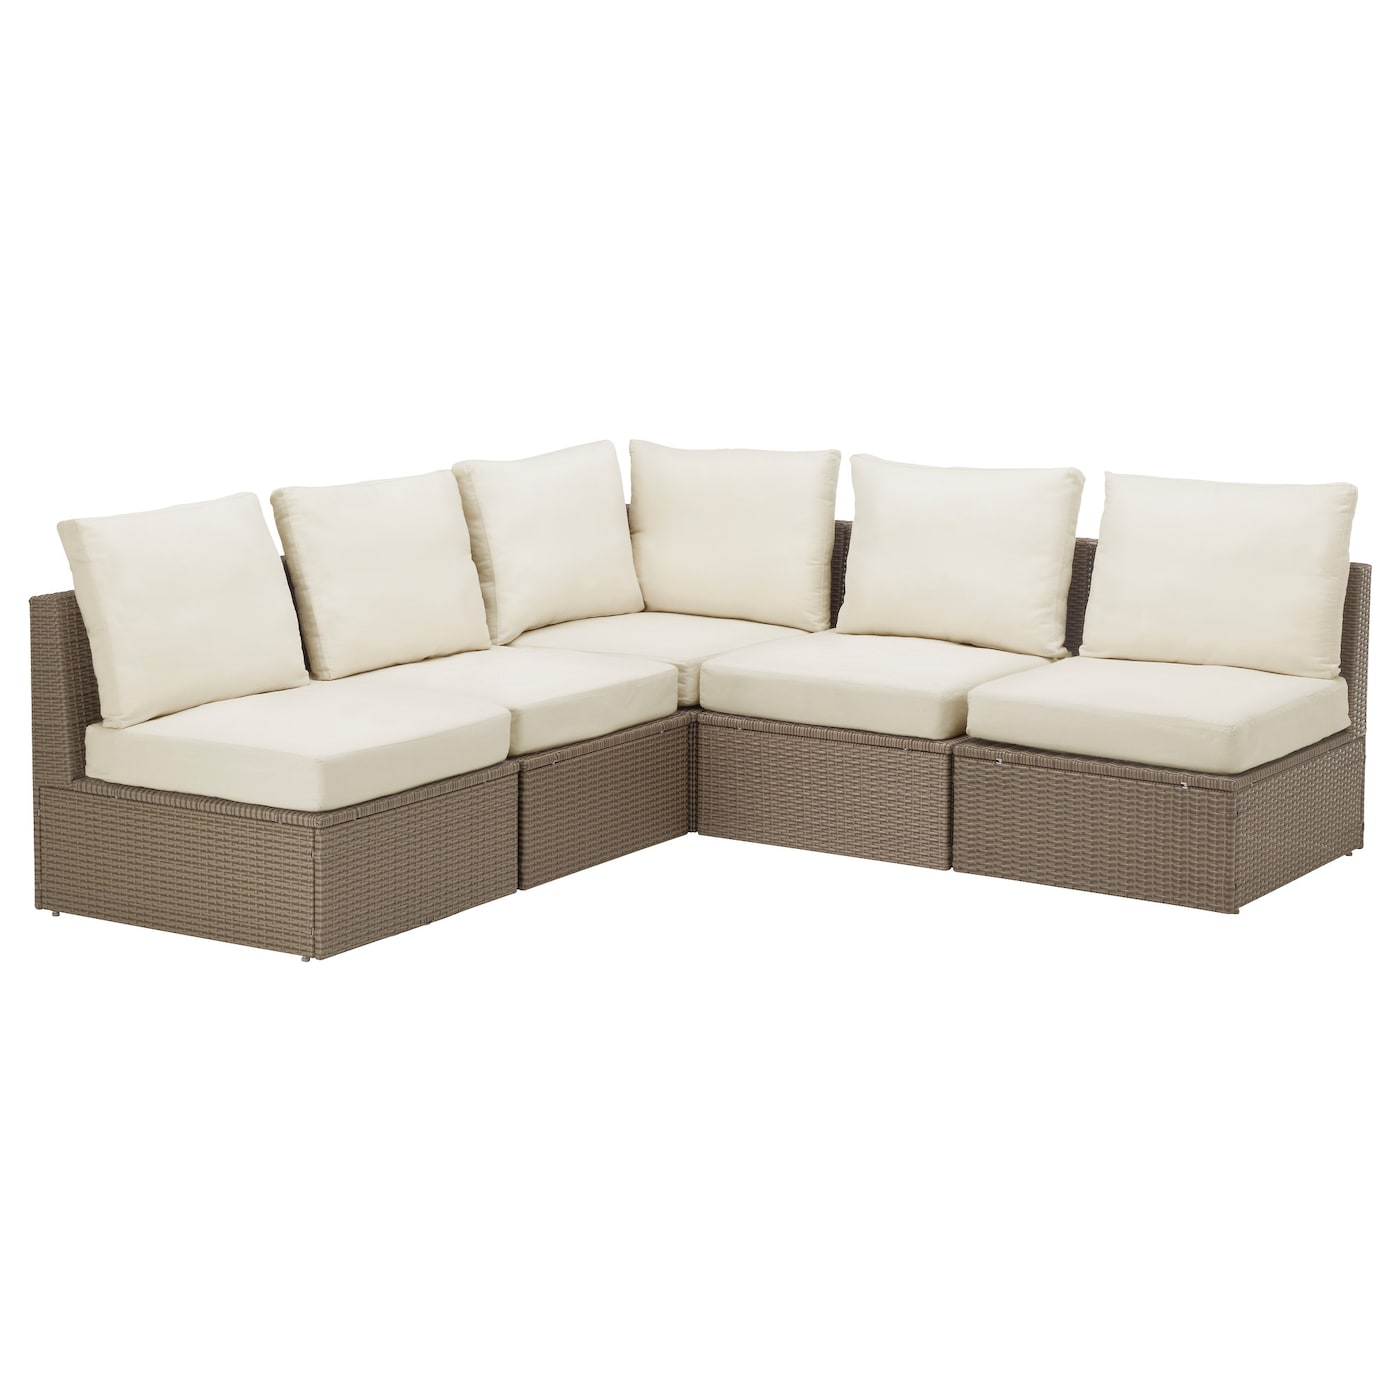 ARHOLMA Corner sofa 3 2 outdoor Brown beige 206 206x76x66